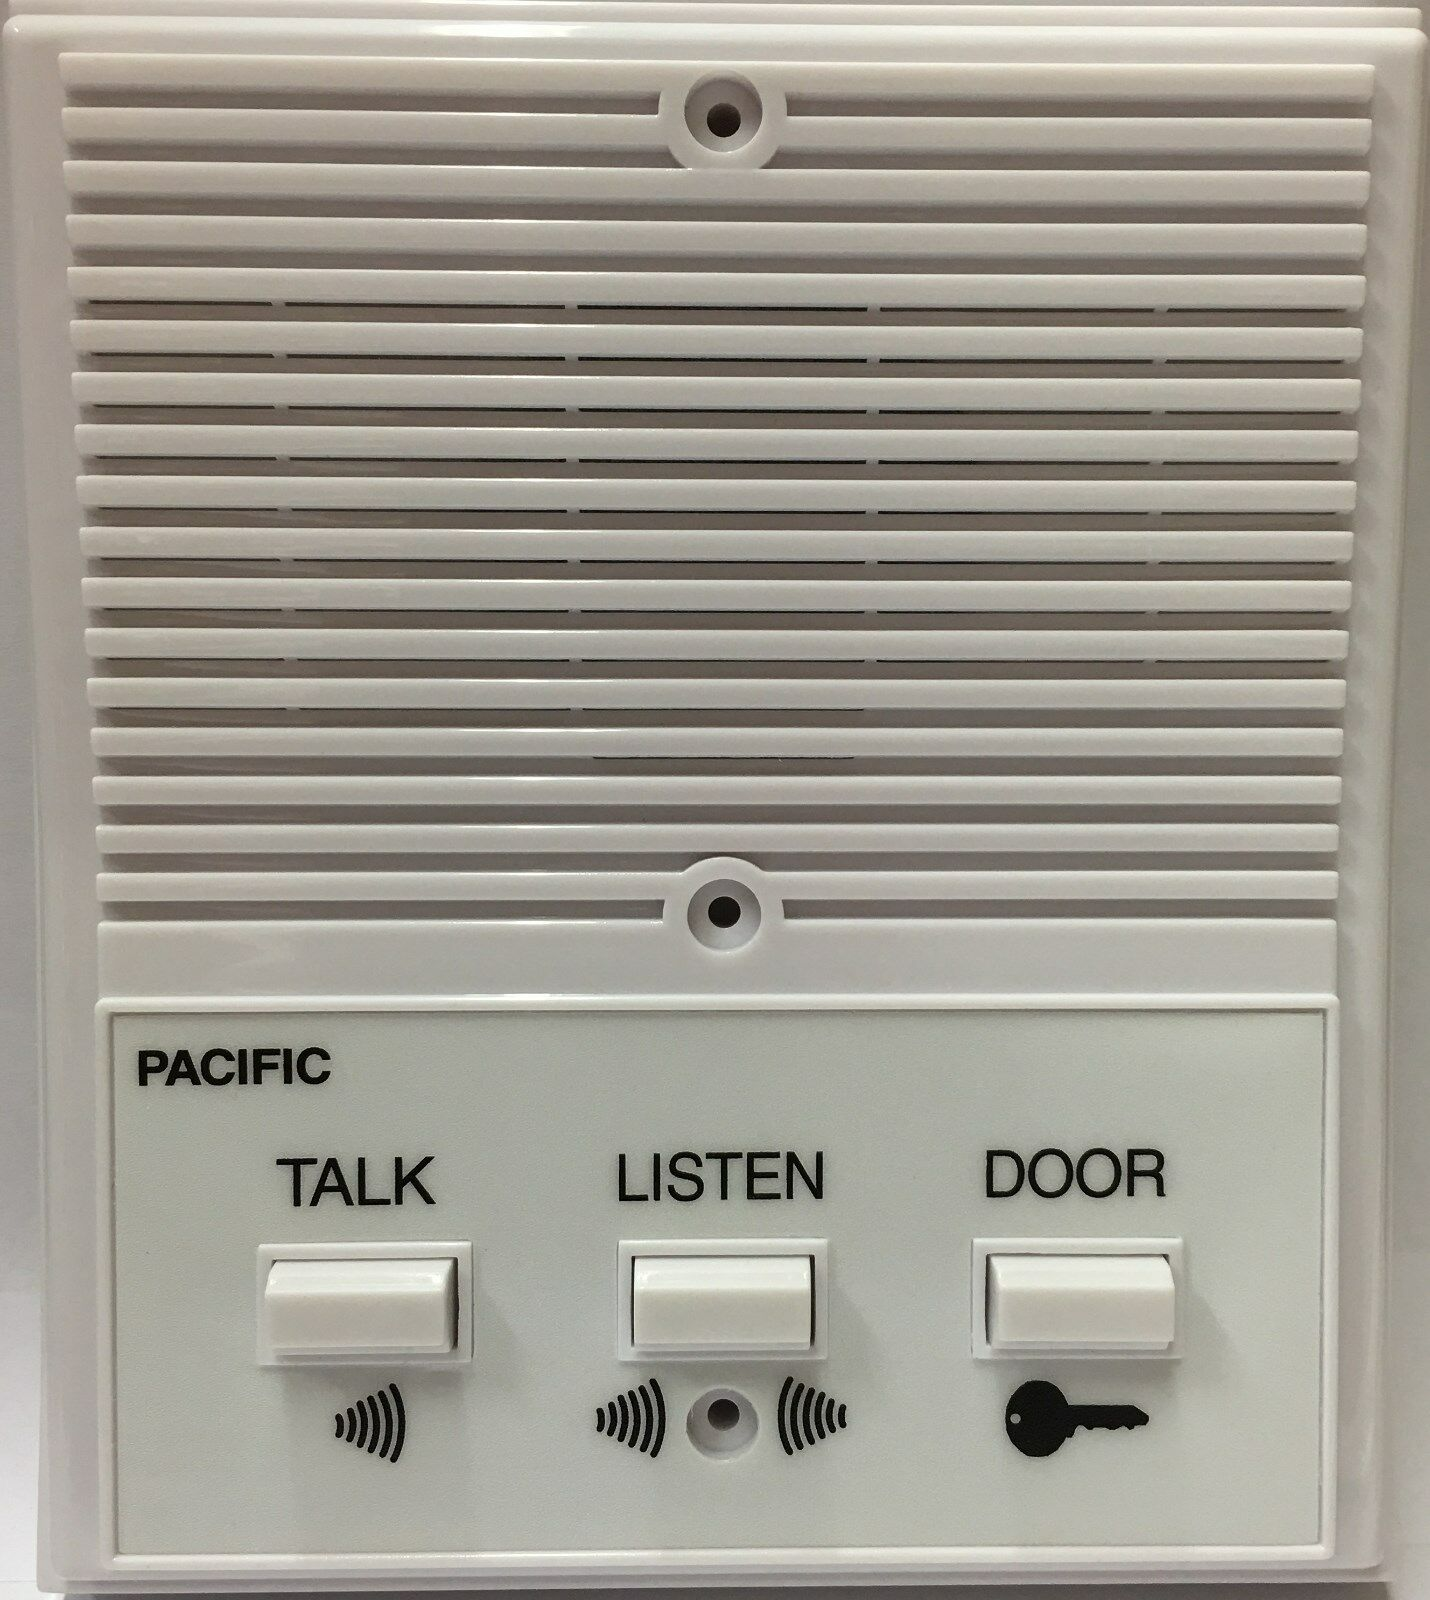 PACIFIC ELECTRONICS APARTMENT Intercom Station 3406 universal 5/6 ...